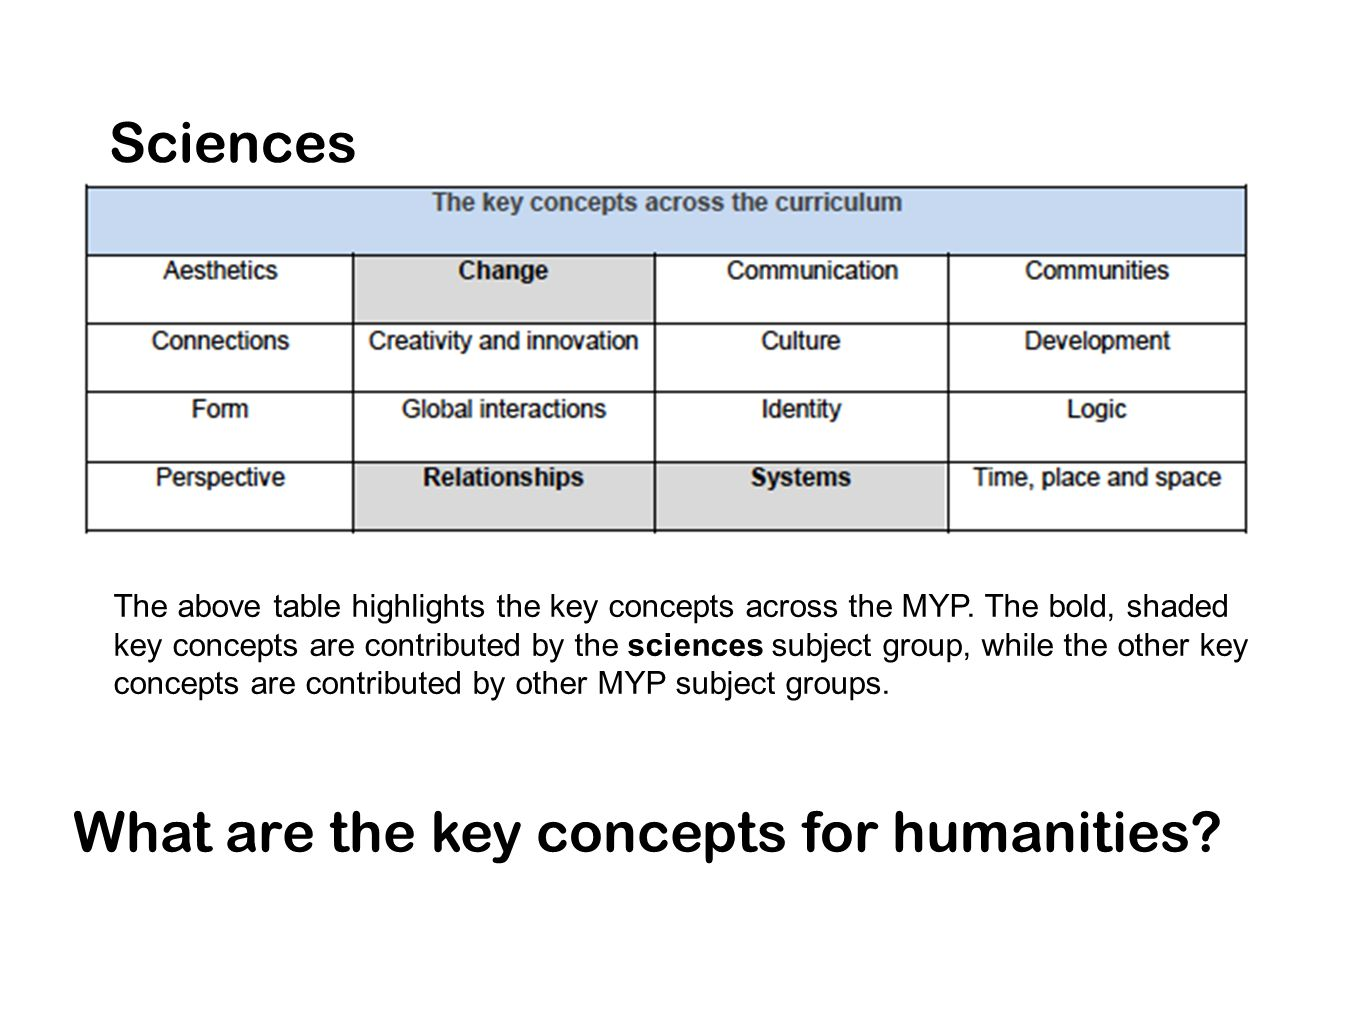 What are the key concepts for humanities